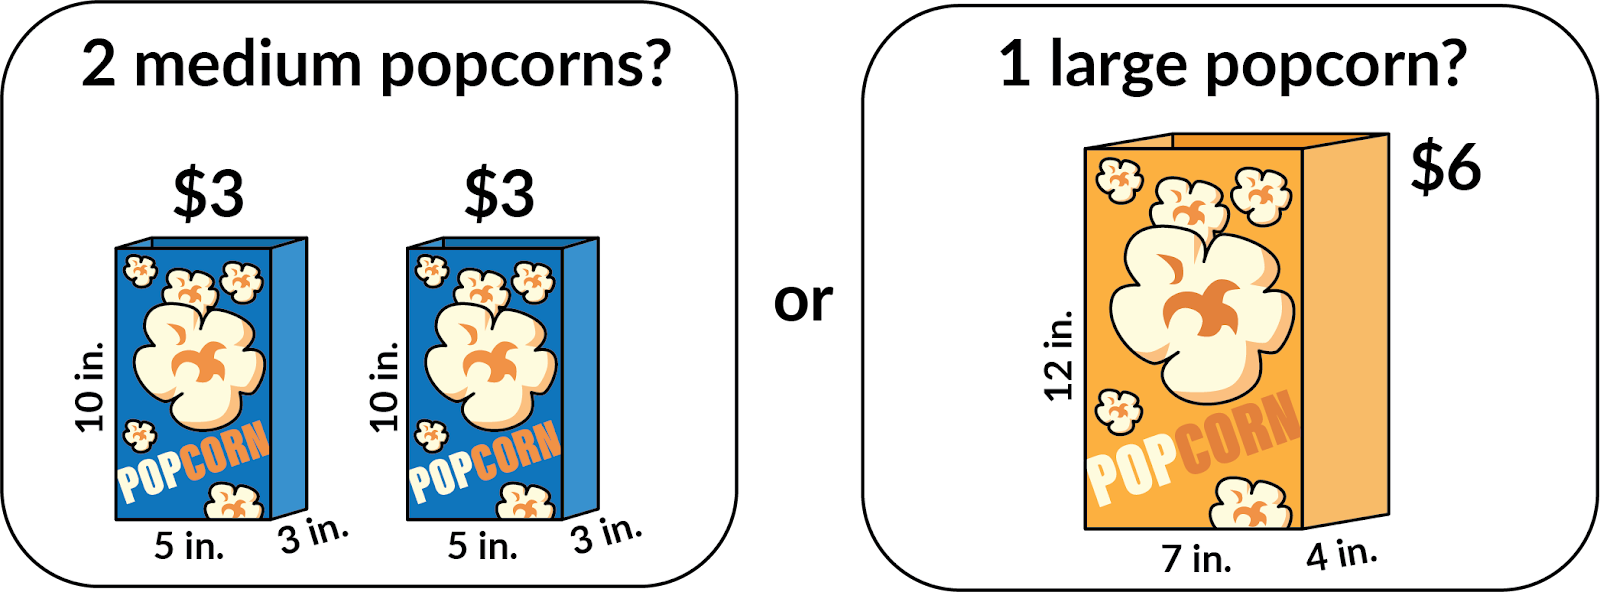 2 medium popcorns for $3 each? Or 1 large popcorn for $6? The medium popcorn bags are 5 inches long by 3 inches wide by 10 inches tall. The large popcorn bag is 7 inches long by 4 inches wide by 12 inches tall.